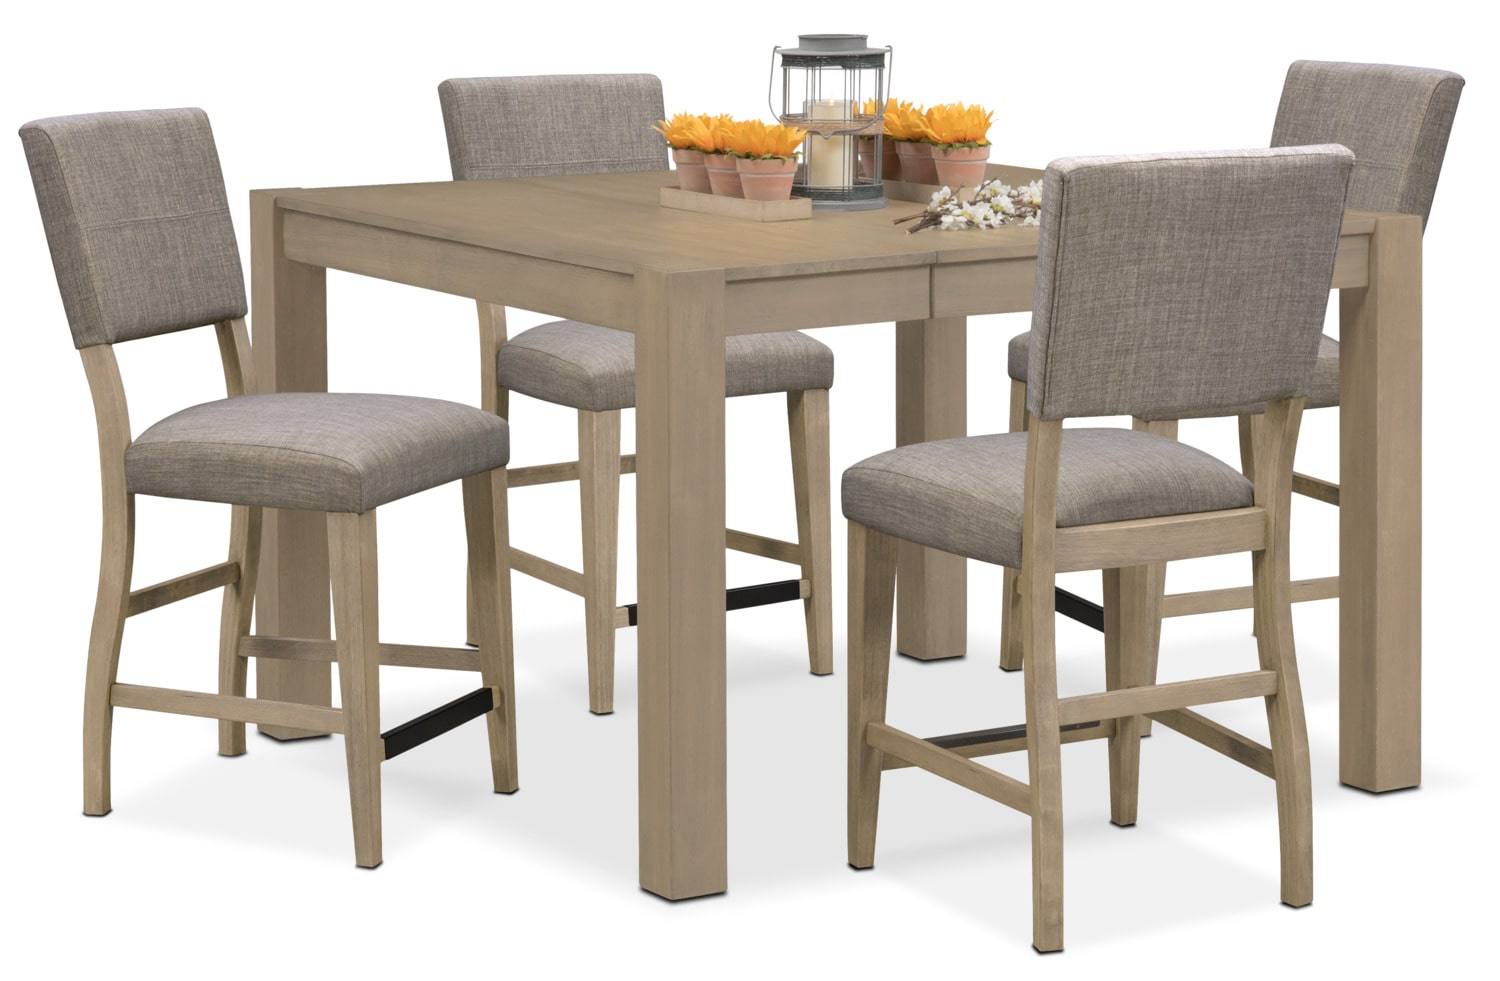 Merveilleux Dining Room Furniture   Tribeca Counter Height Table And 4 Upholstered Side  Chairs   Gray